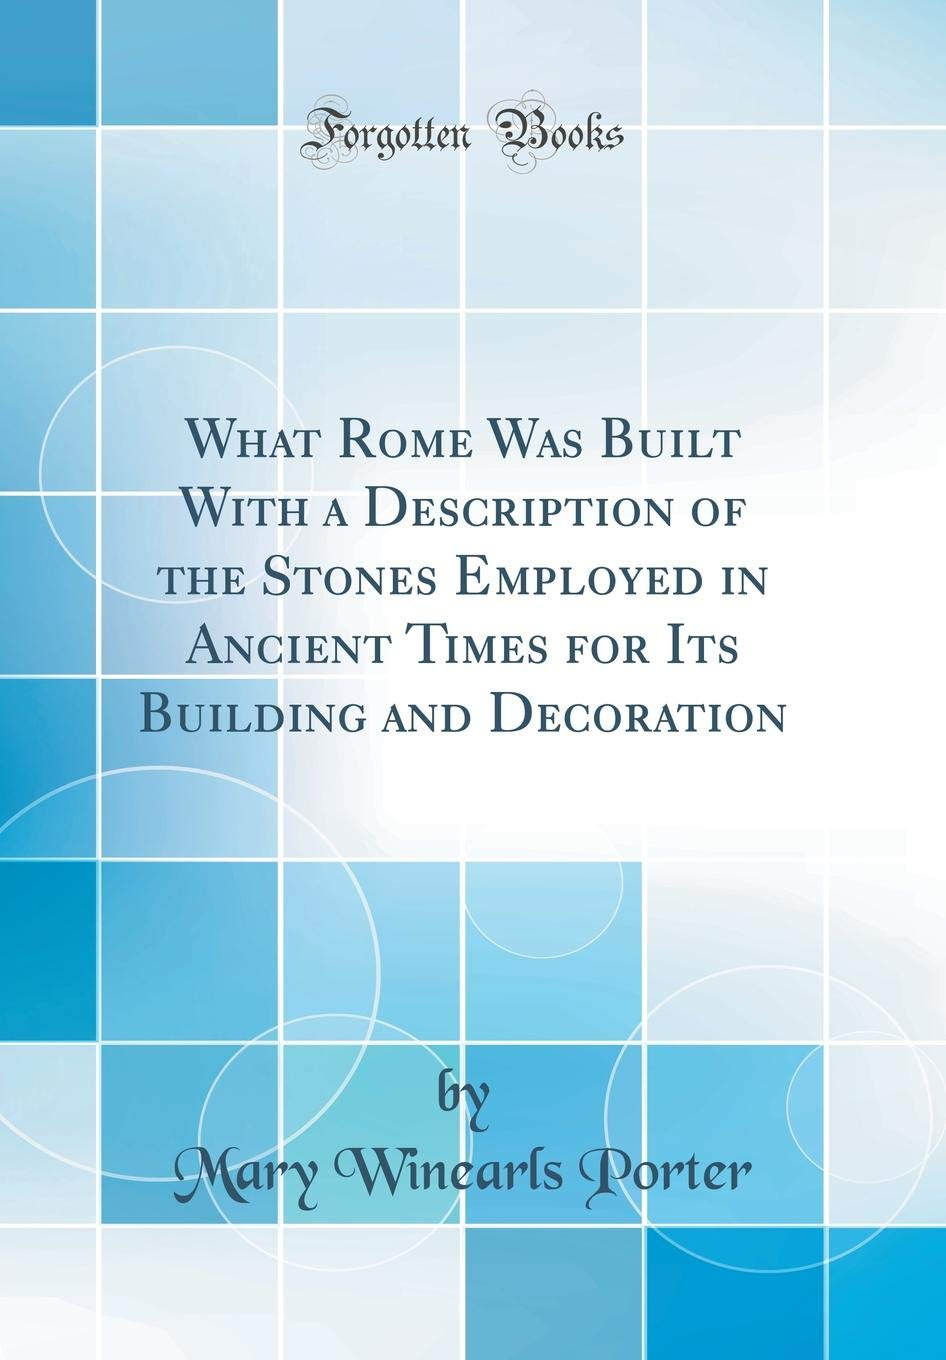 What Rome Was Built With a Description of the Stones Employed in Ancient Times for Its Building and Decoration (Classic Reprint) ebook